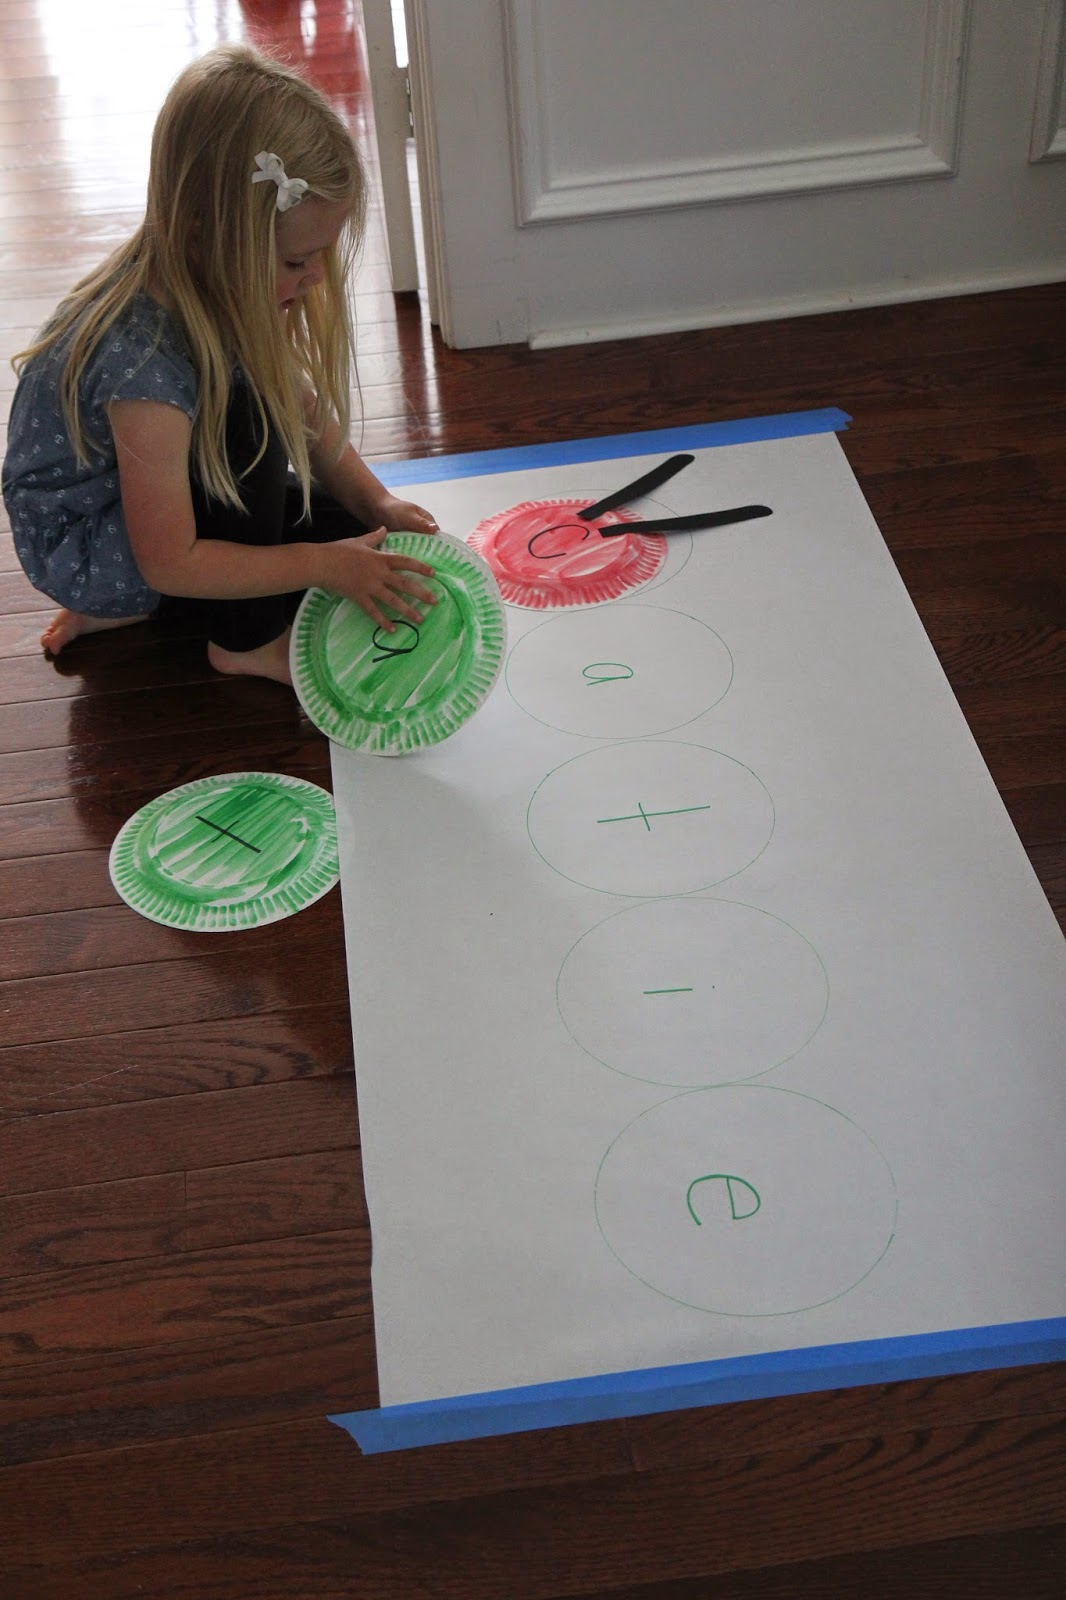 To play the Very Hungry Caterpillar Name Game all you do is. & Toddler Approved!: Very Hungry Caterpillar Paper Plate Name Game